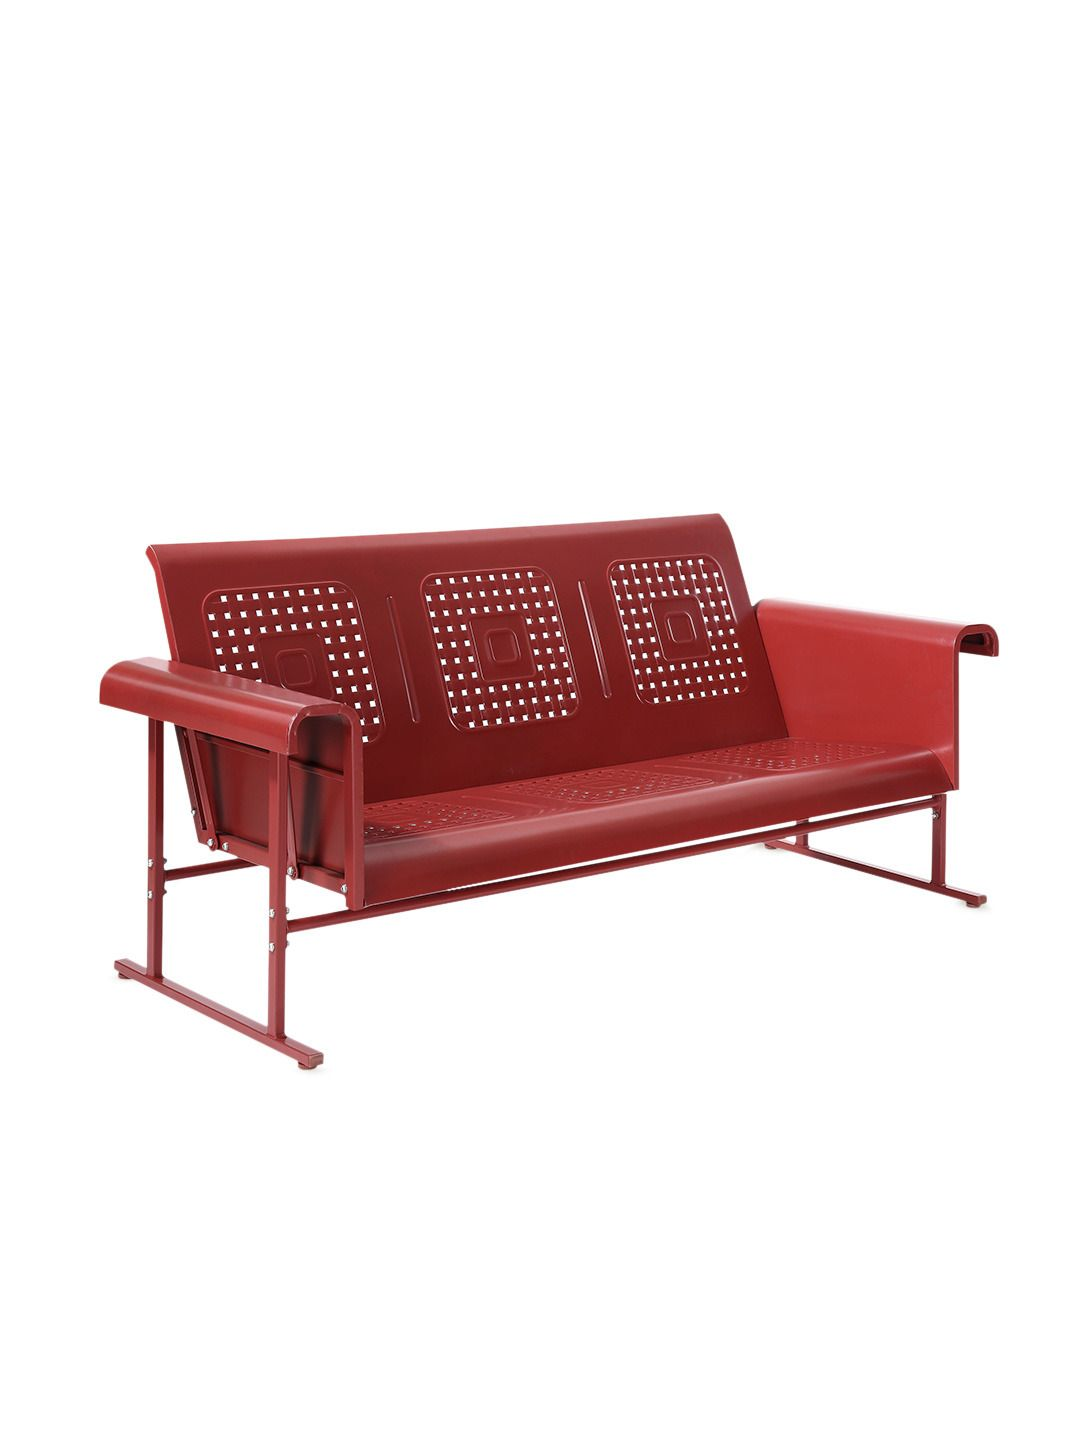 Veranda Sofa Glider By Crosley At Gilt